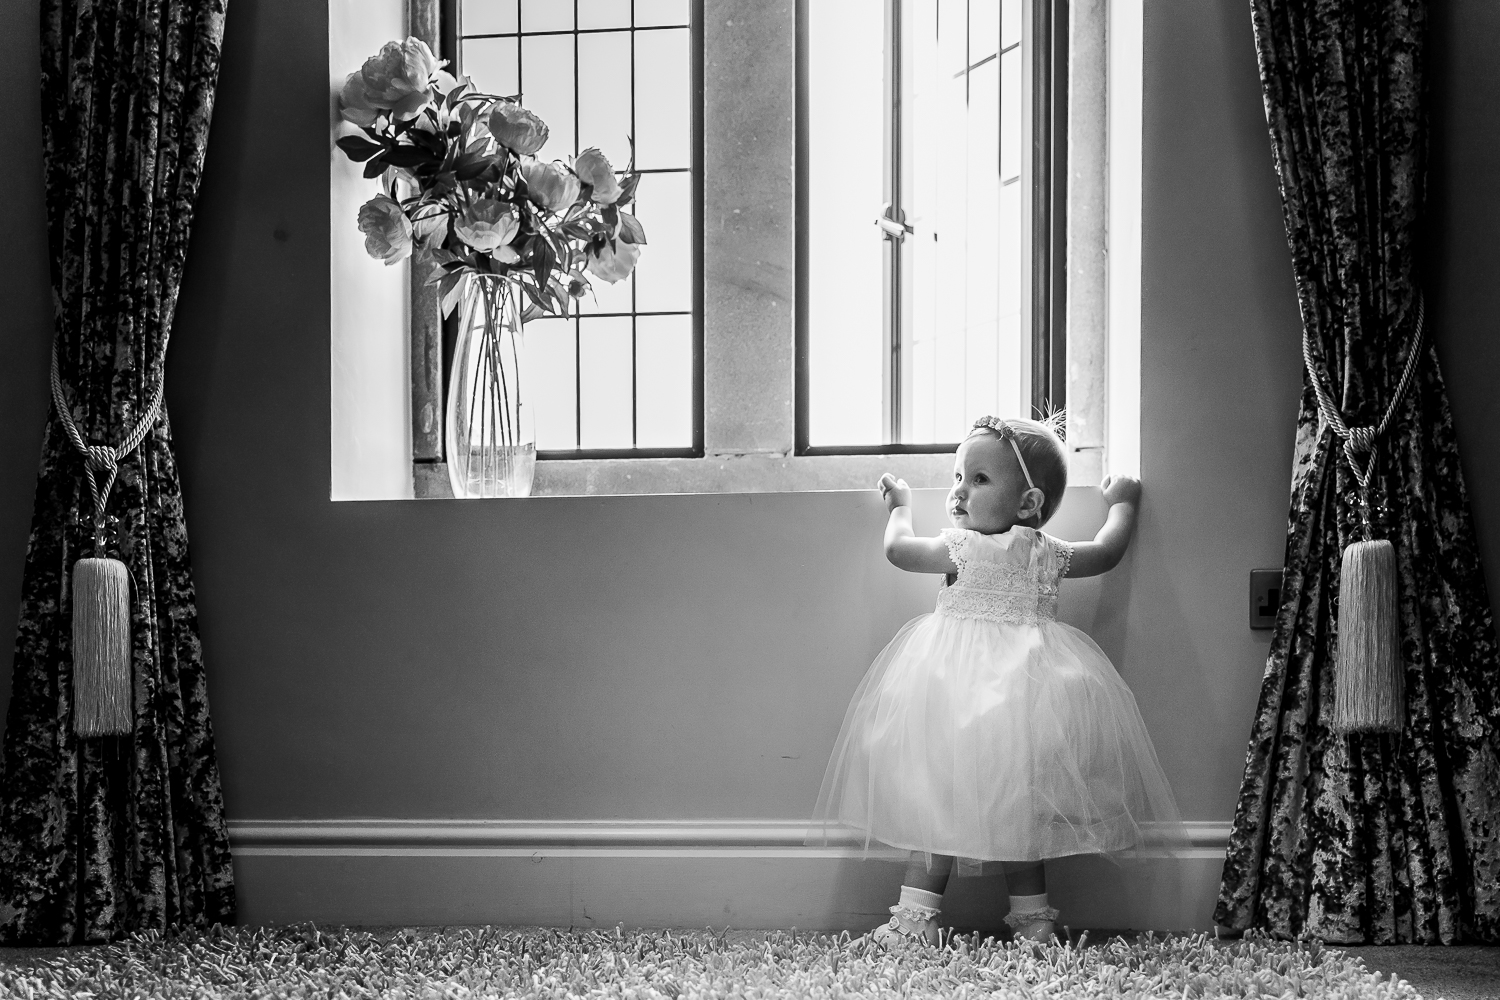 Flower girl in the window at Merrydale Manor